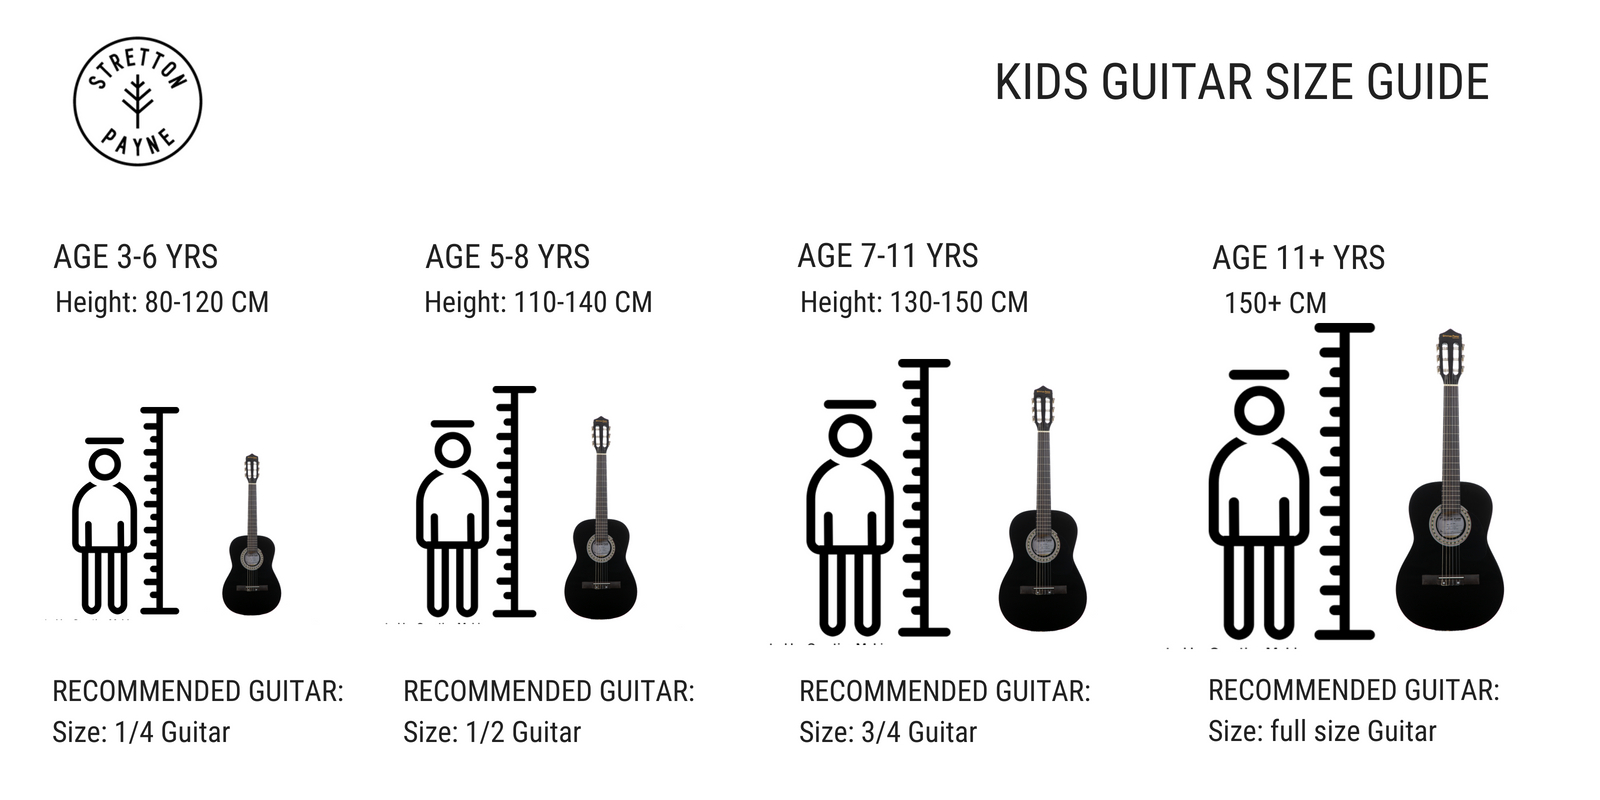 kids-guitar-size-guide-stretton-payne.jpg